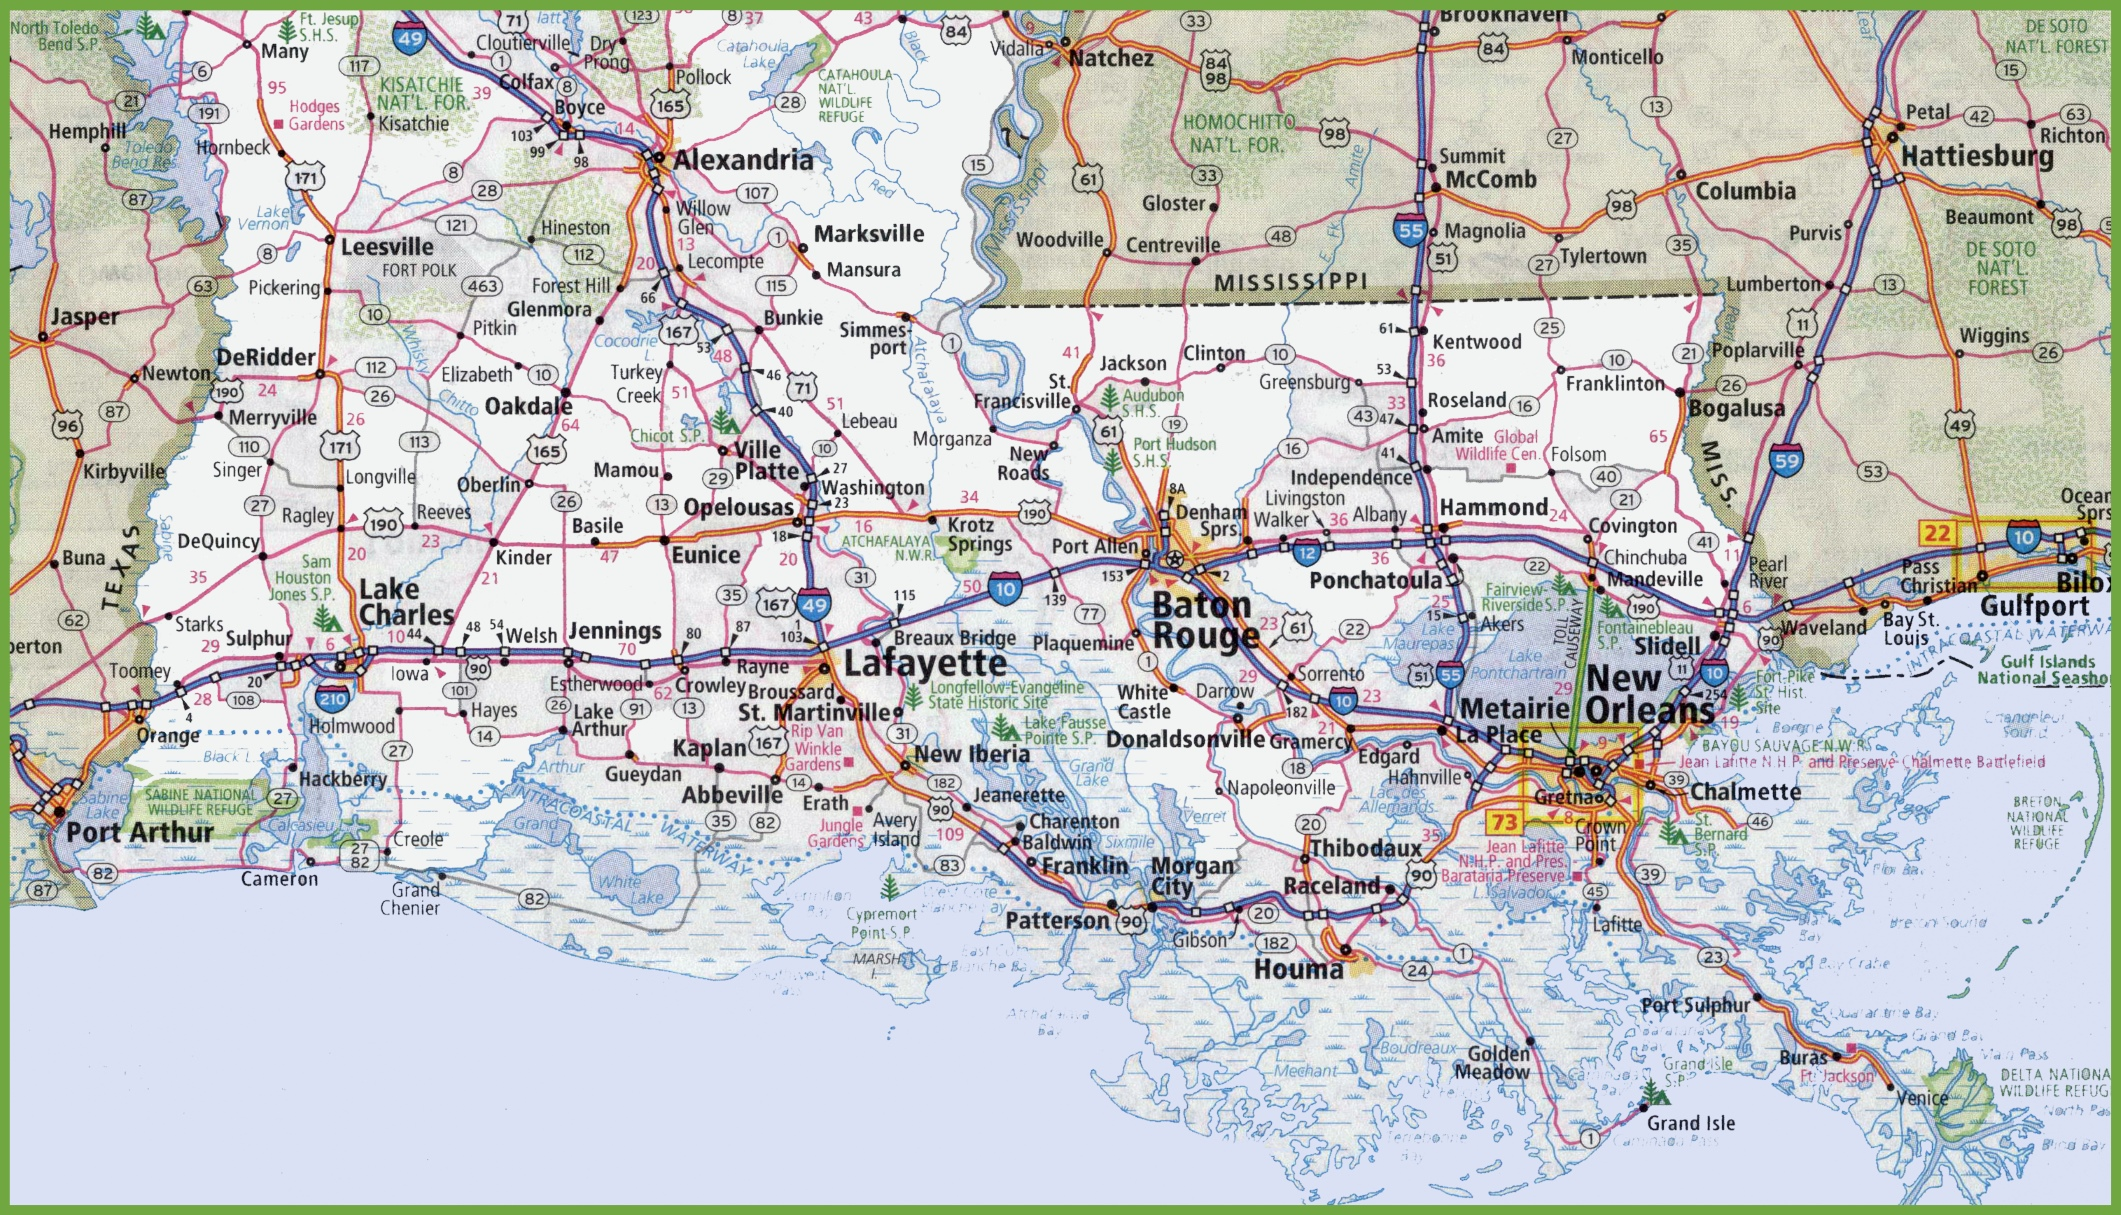 photo relating to Printable Map of Louisiana called Map of Southern Louisiana